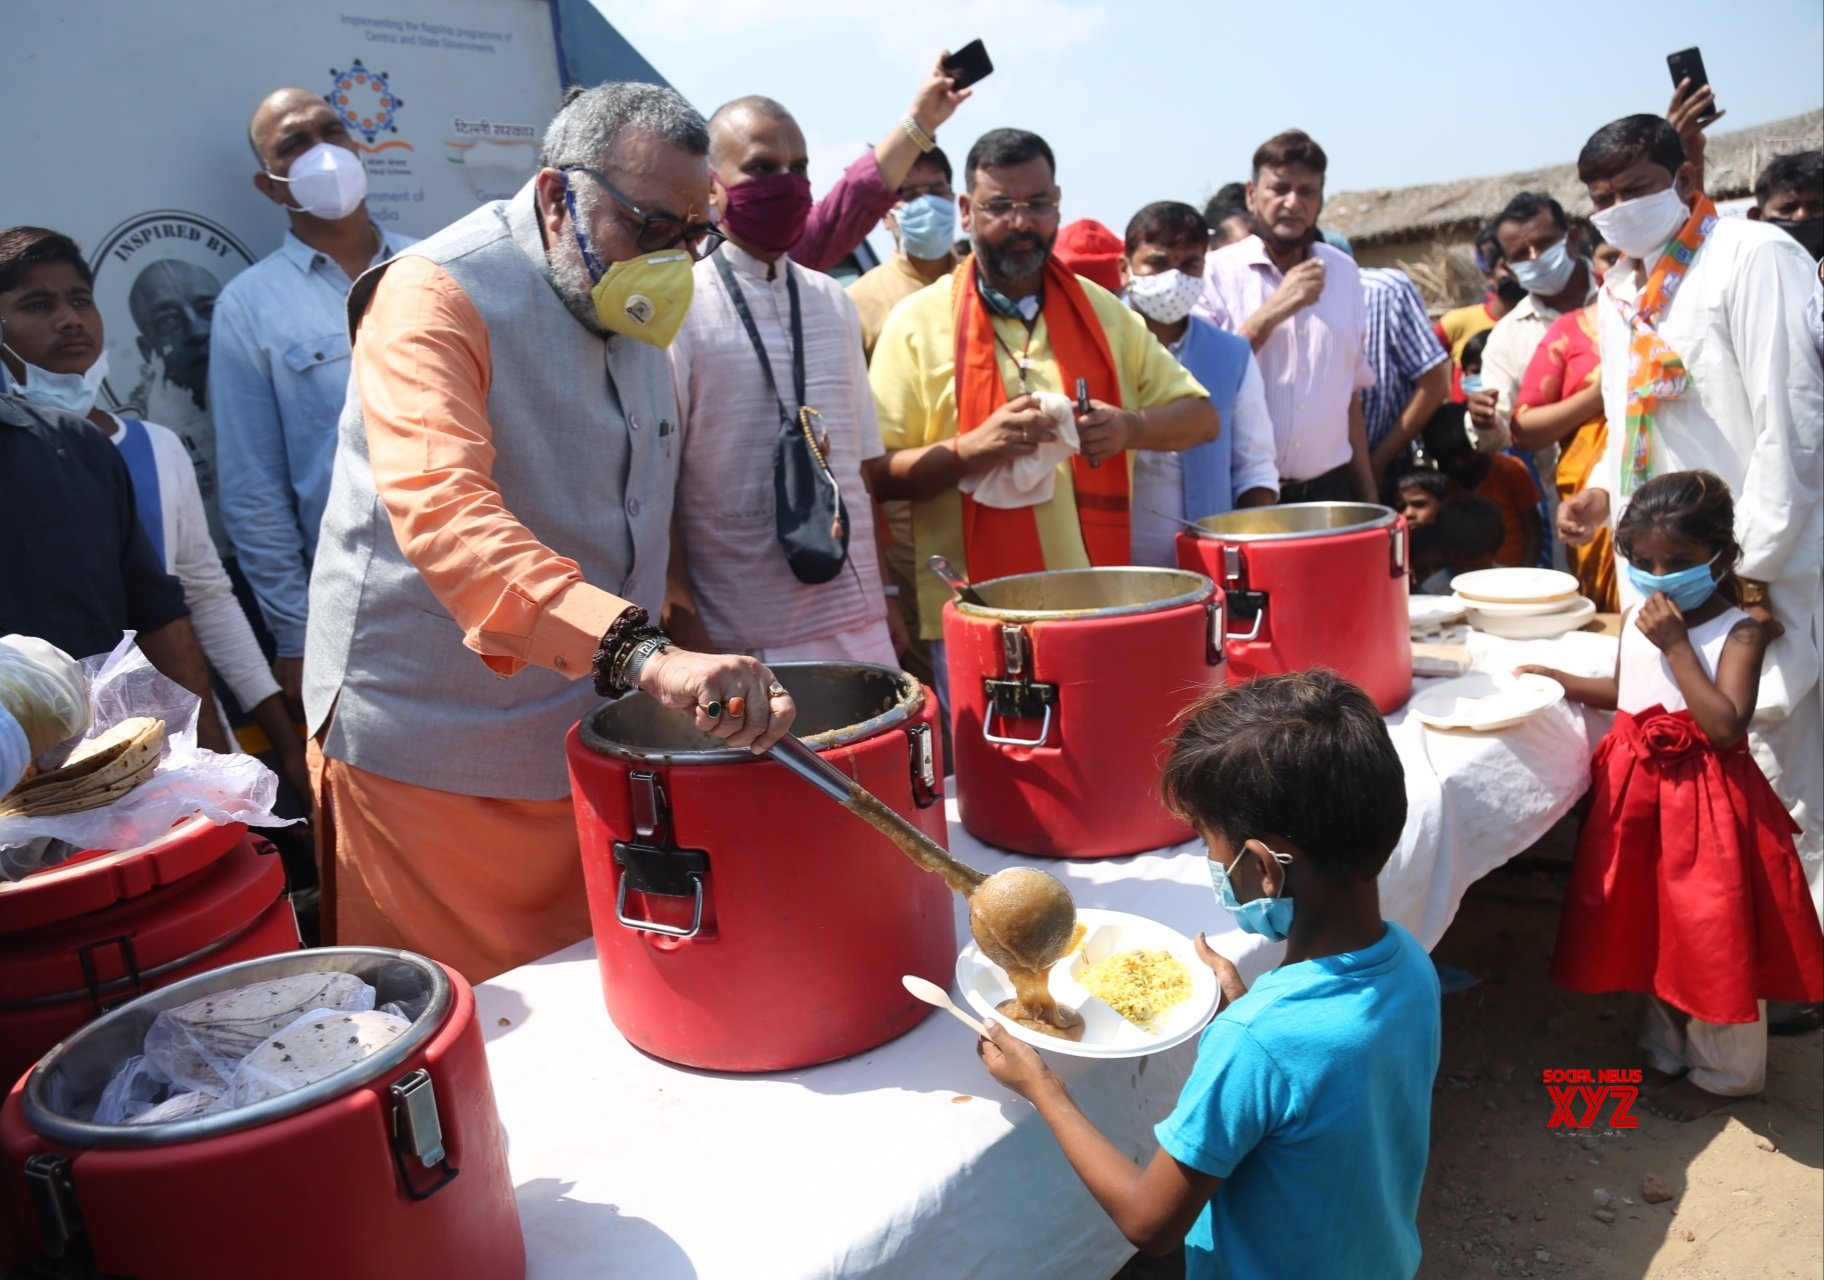 New Delhi: BJP distributes food and sewing machines to Pakistani Hindu refugees on PM Modi's 70th b'day #Gallery